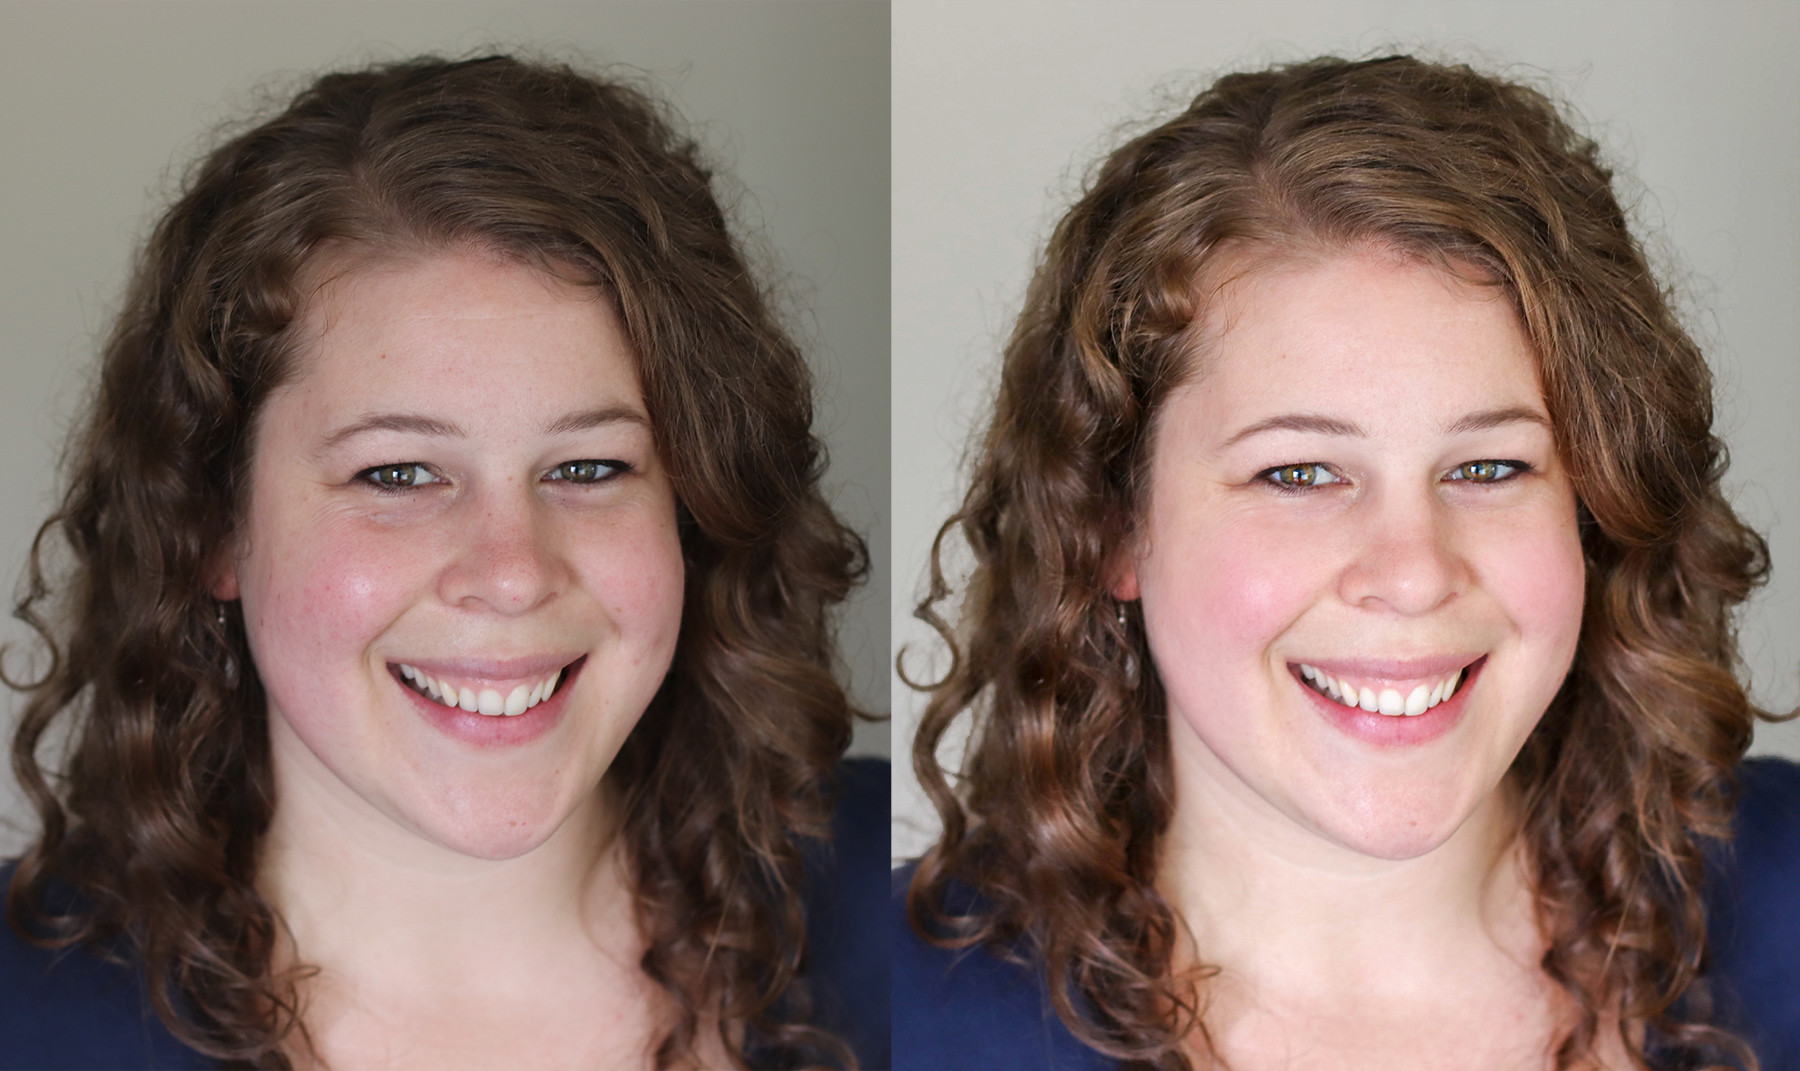 DianaFace Before After.jpg